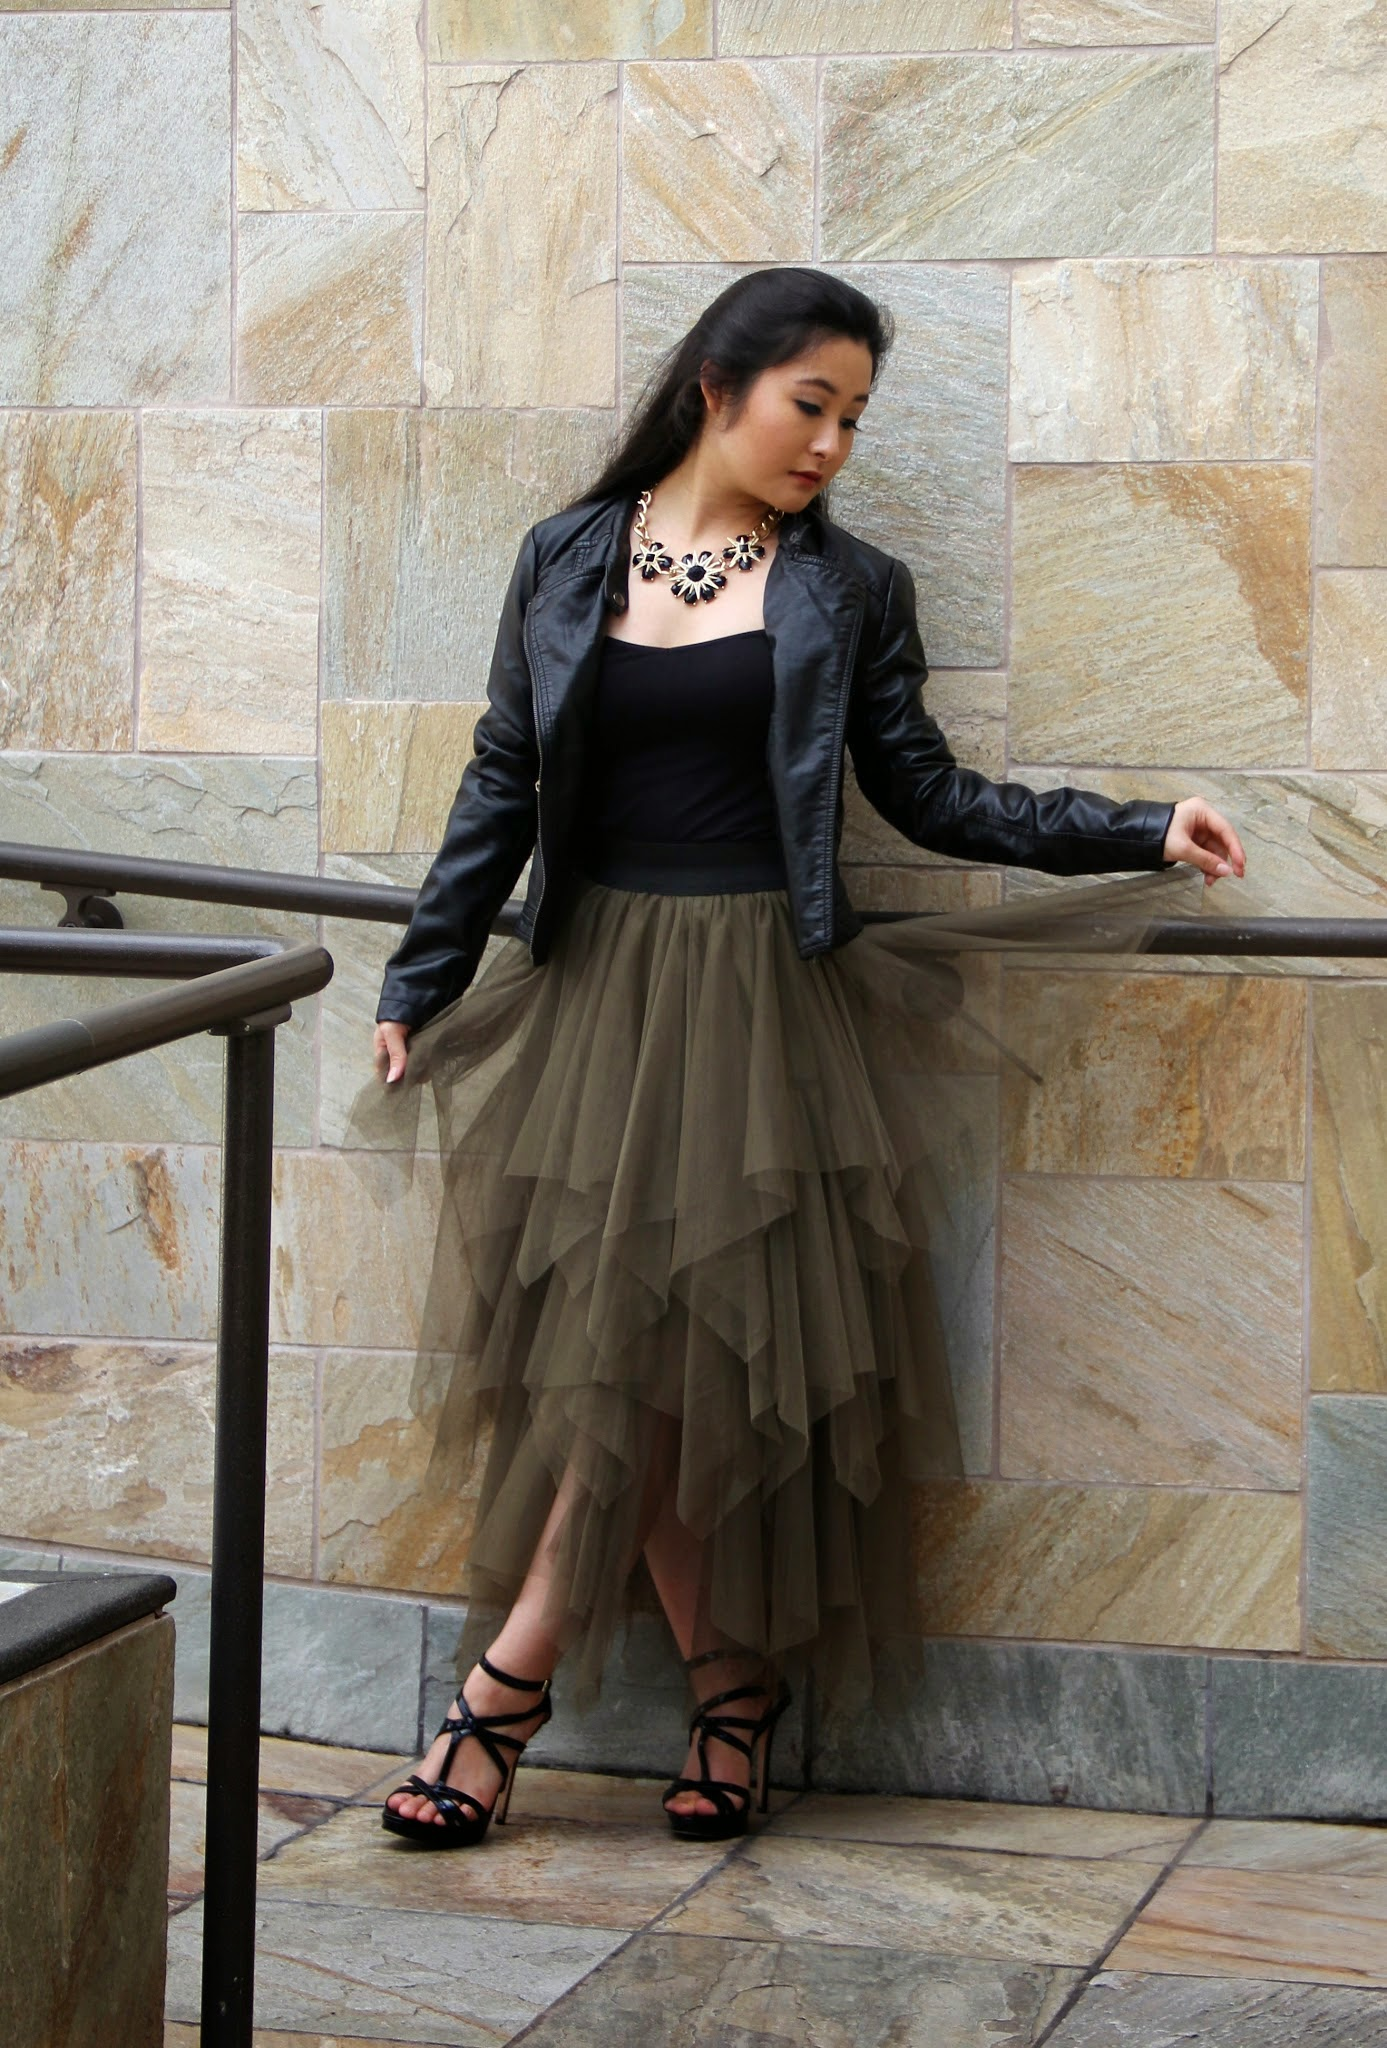 Tulle Skirt Outfit @ Elizabeth, Marie, & Me